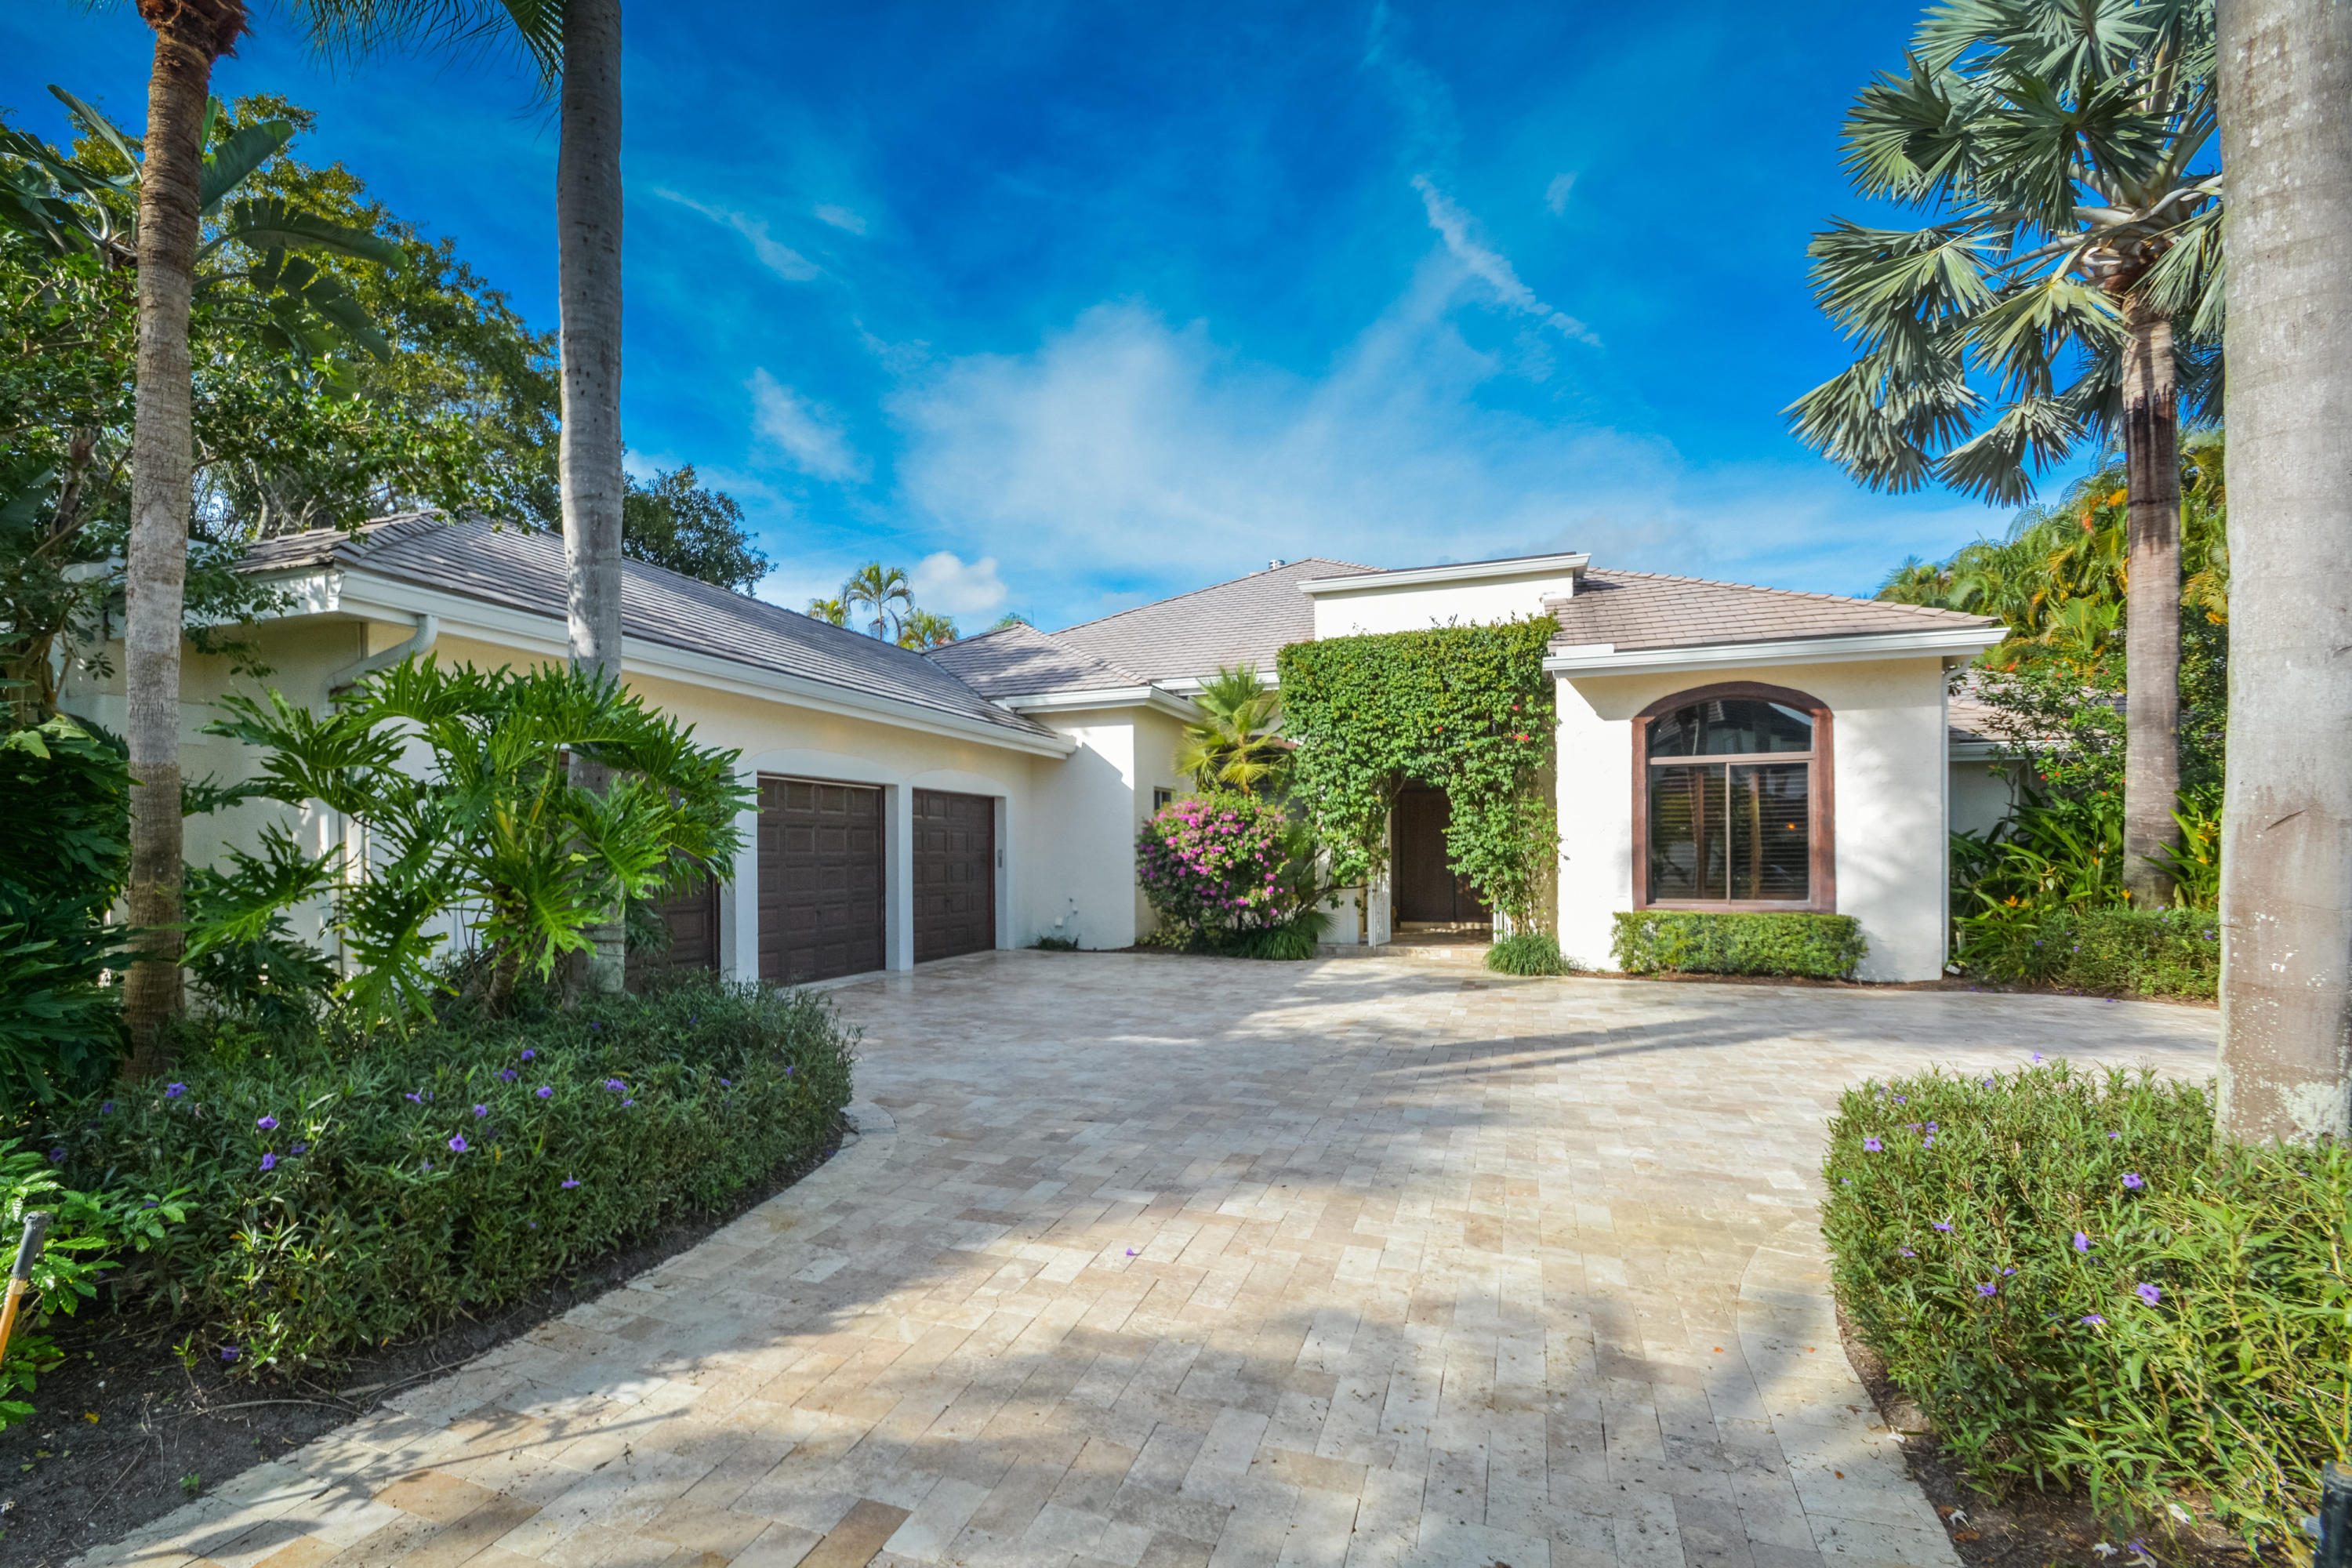 Details for 17141 White Haven Drive, Boca Raton, FL 33496